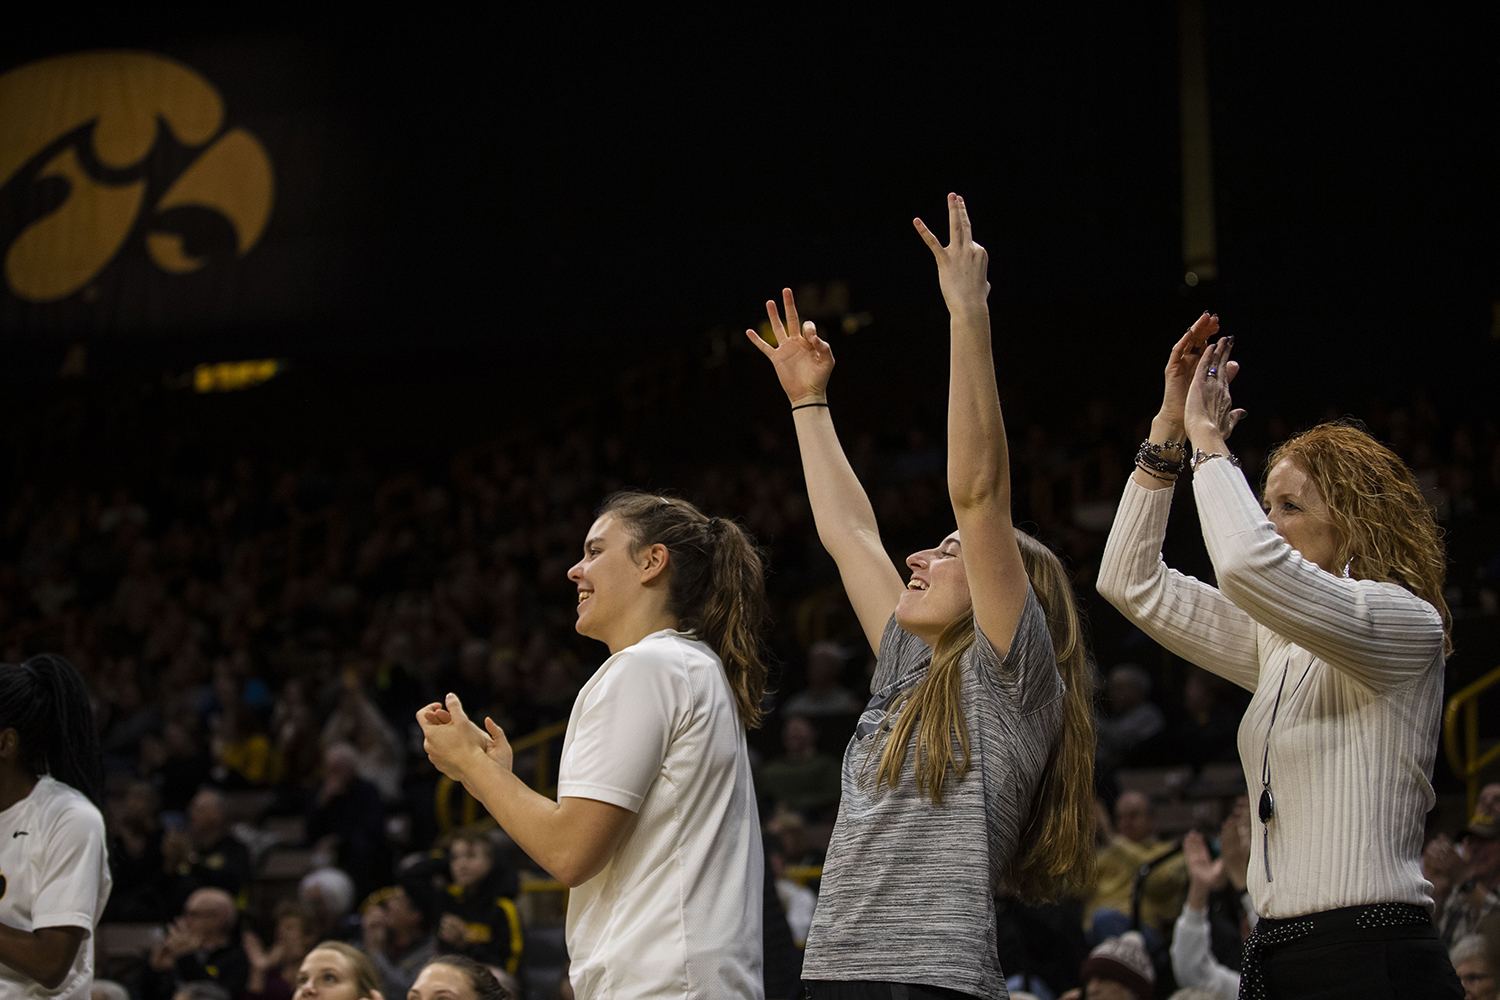 The+Iowa+bench+reacts+to+a+3+during+the+Iowa%2FMichigan+women%27s+basketball+game+at+Carver-Hawkeye+Arena+on+Thursday%2C+January+17%2C+2019.+The+Hawkeyes+defeated+the+Wolverines%2C+75-61.+